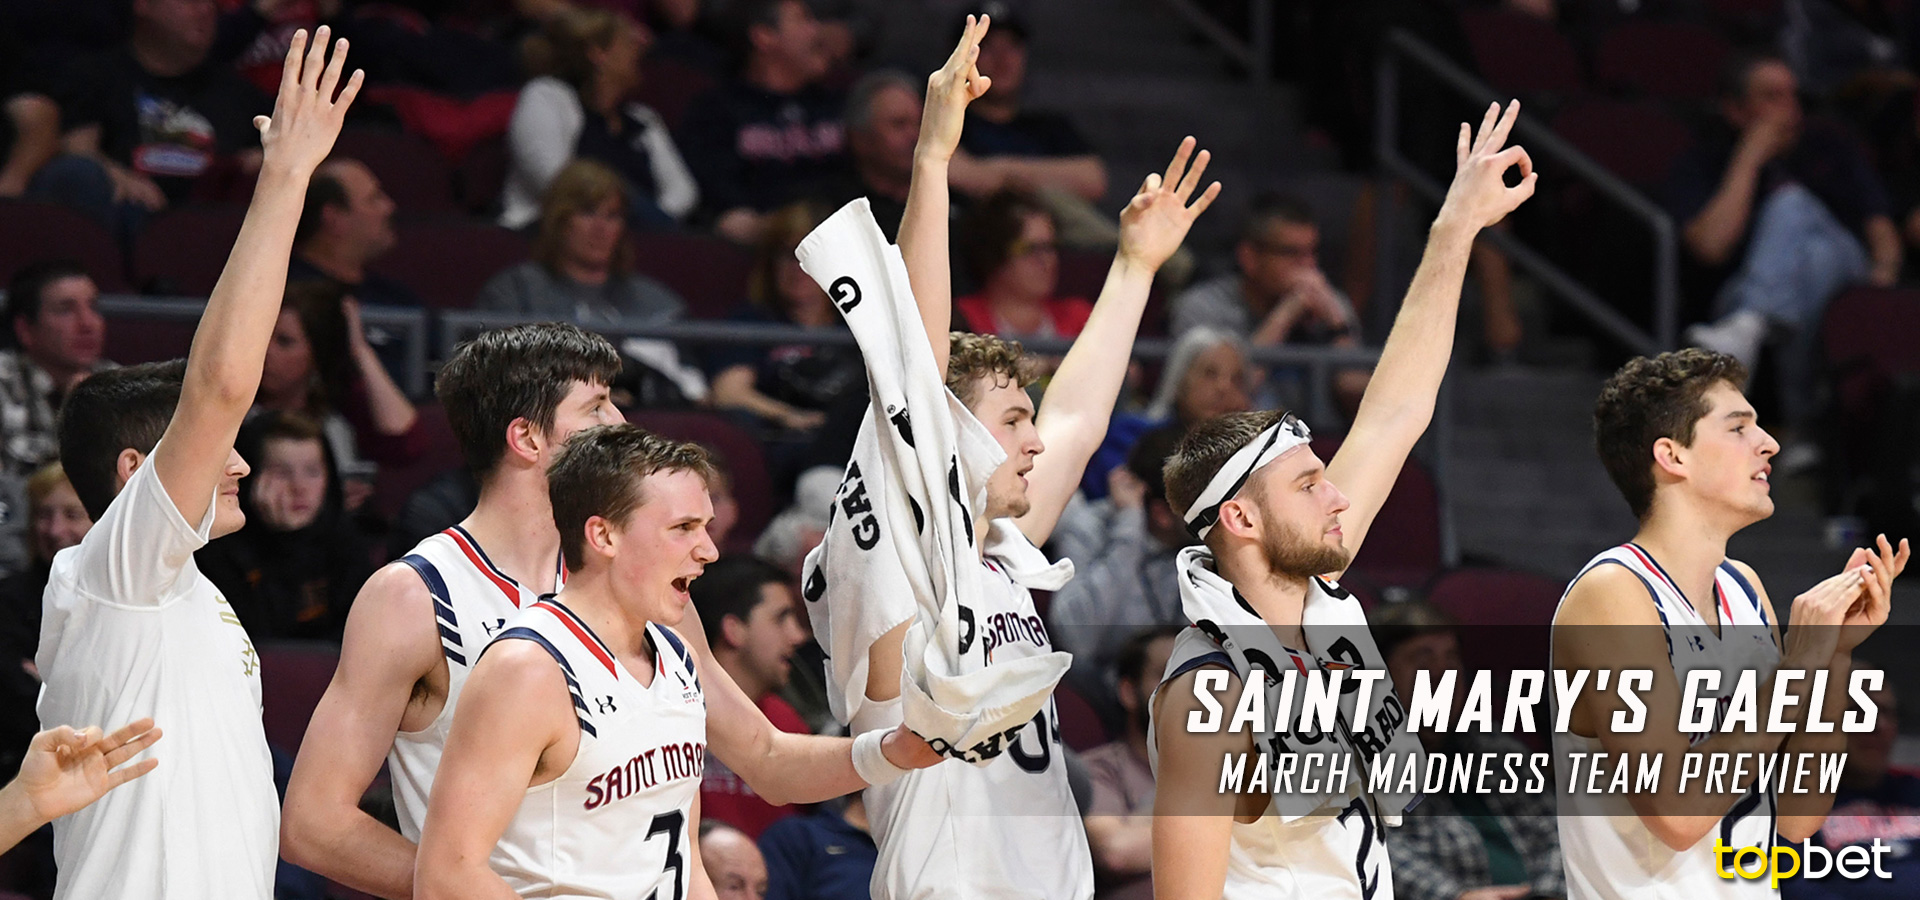 Saint Mary's – March Madness Team Predictions and Odds 2017